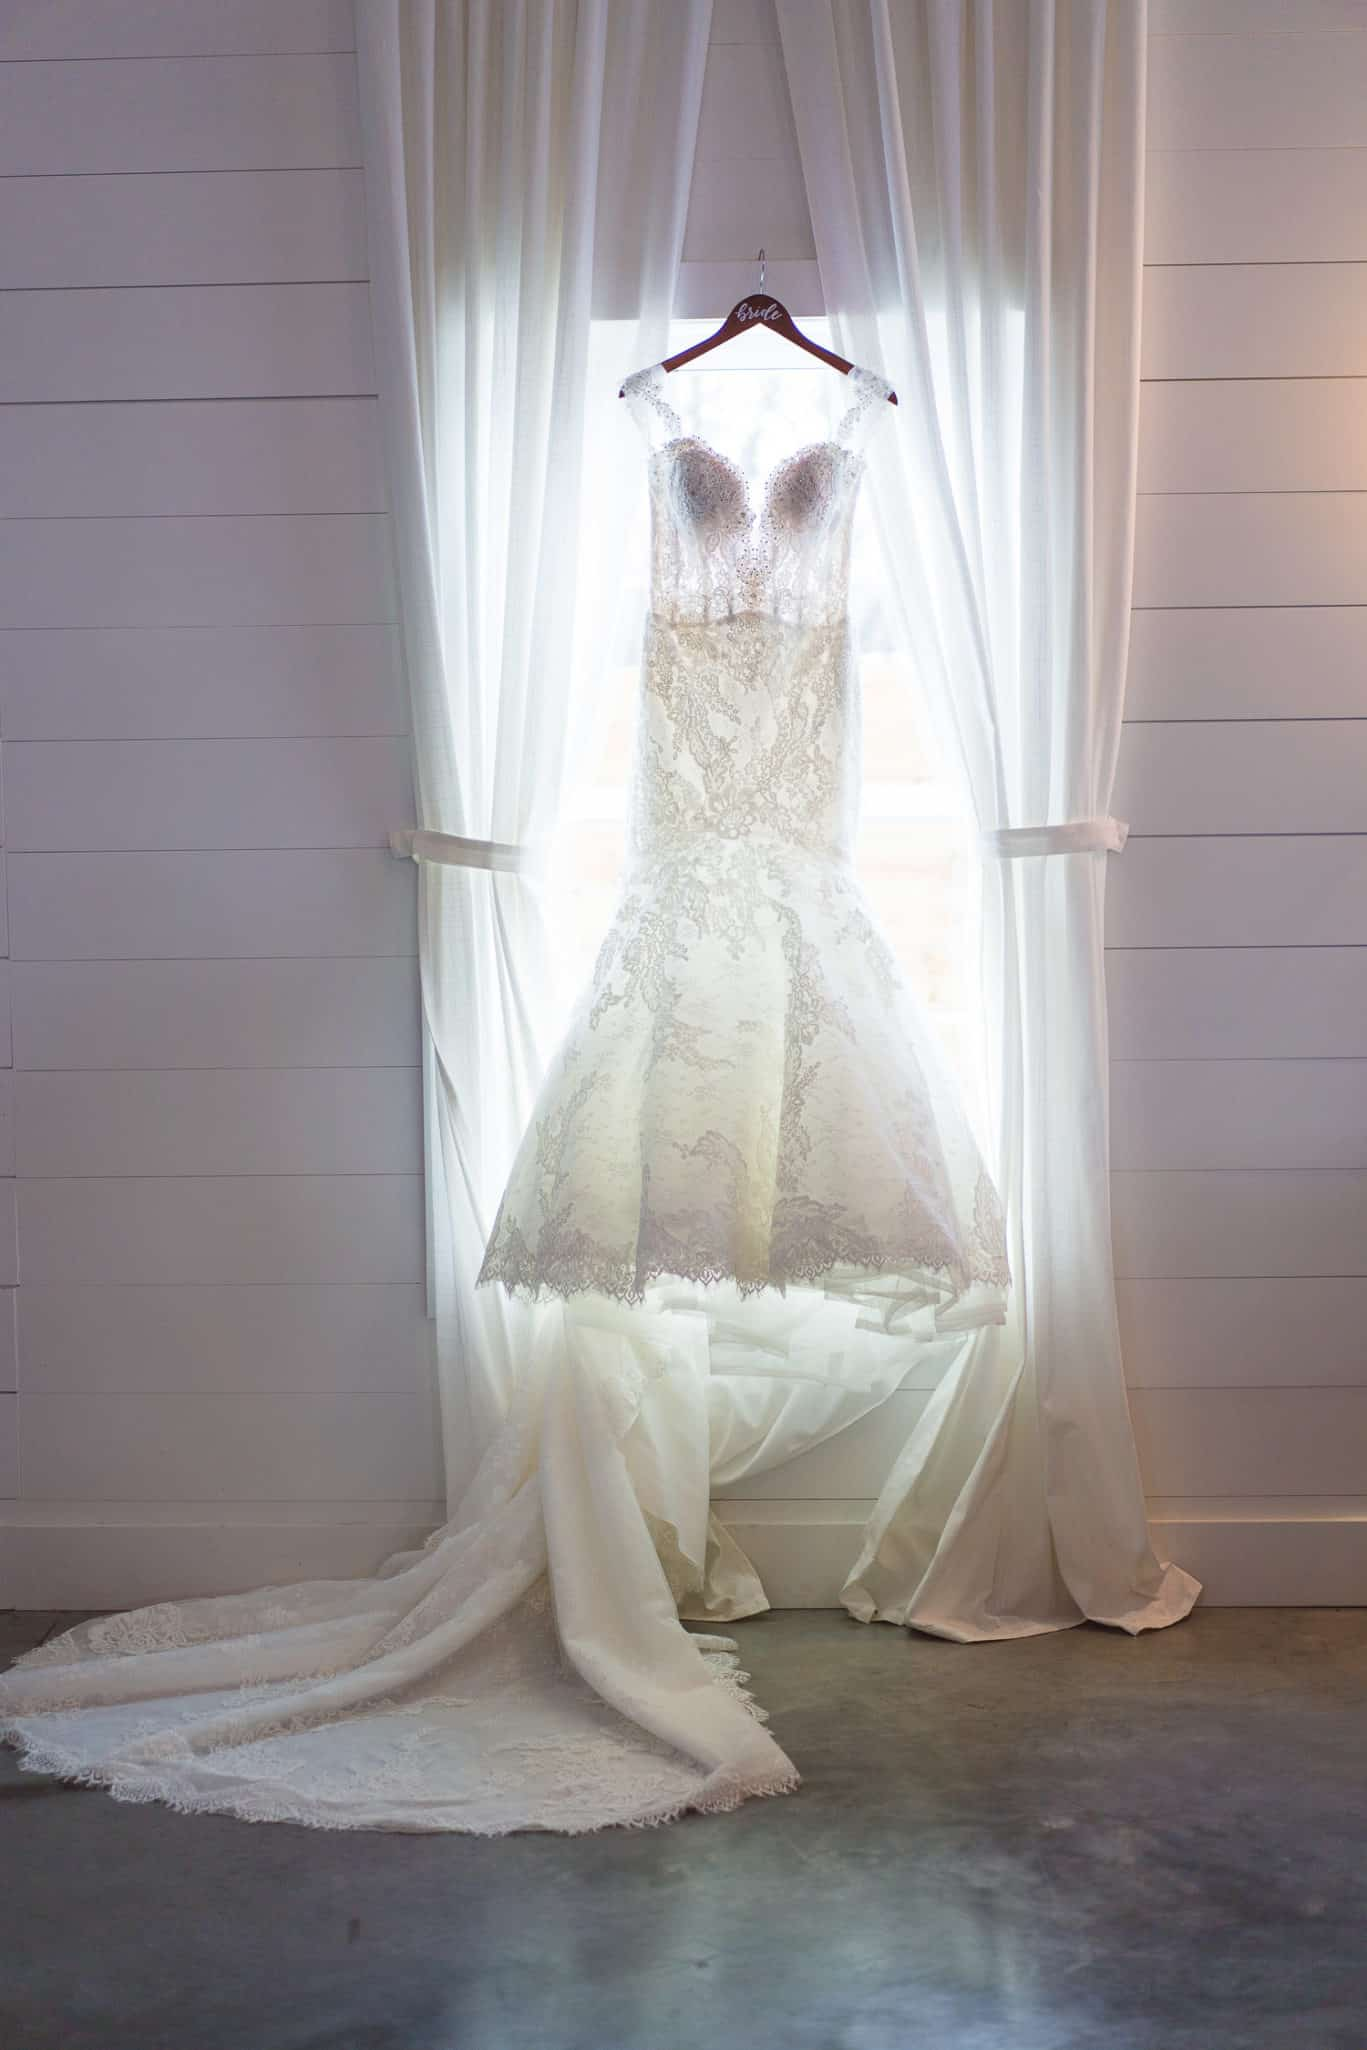 Gown from Bridal Extraordinaire at Mia's bridal provided gorgeous suits for wedding at The Farms at Woodend Springs wedding venue in Bonner Springs Kansas